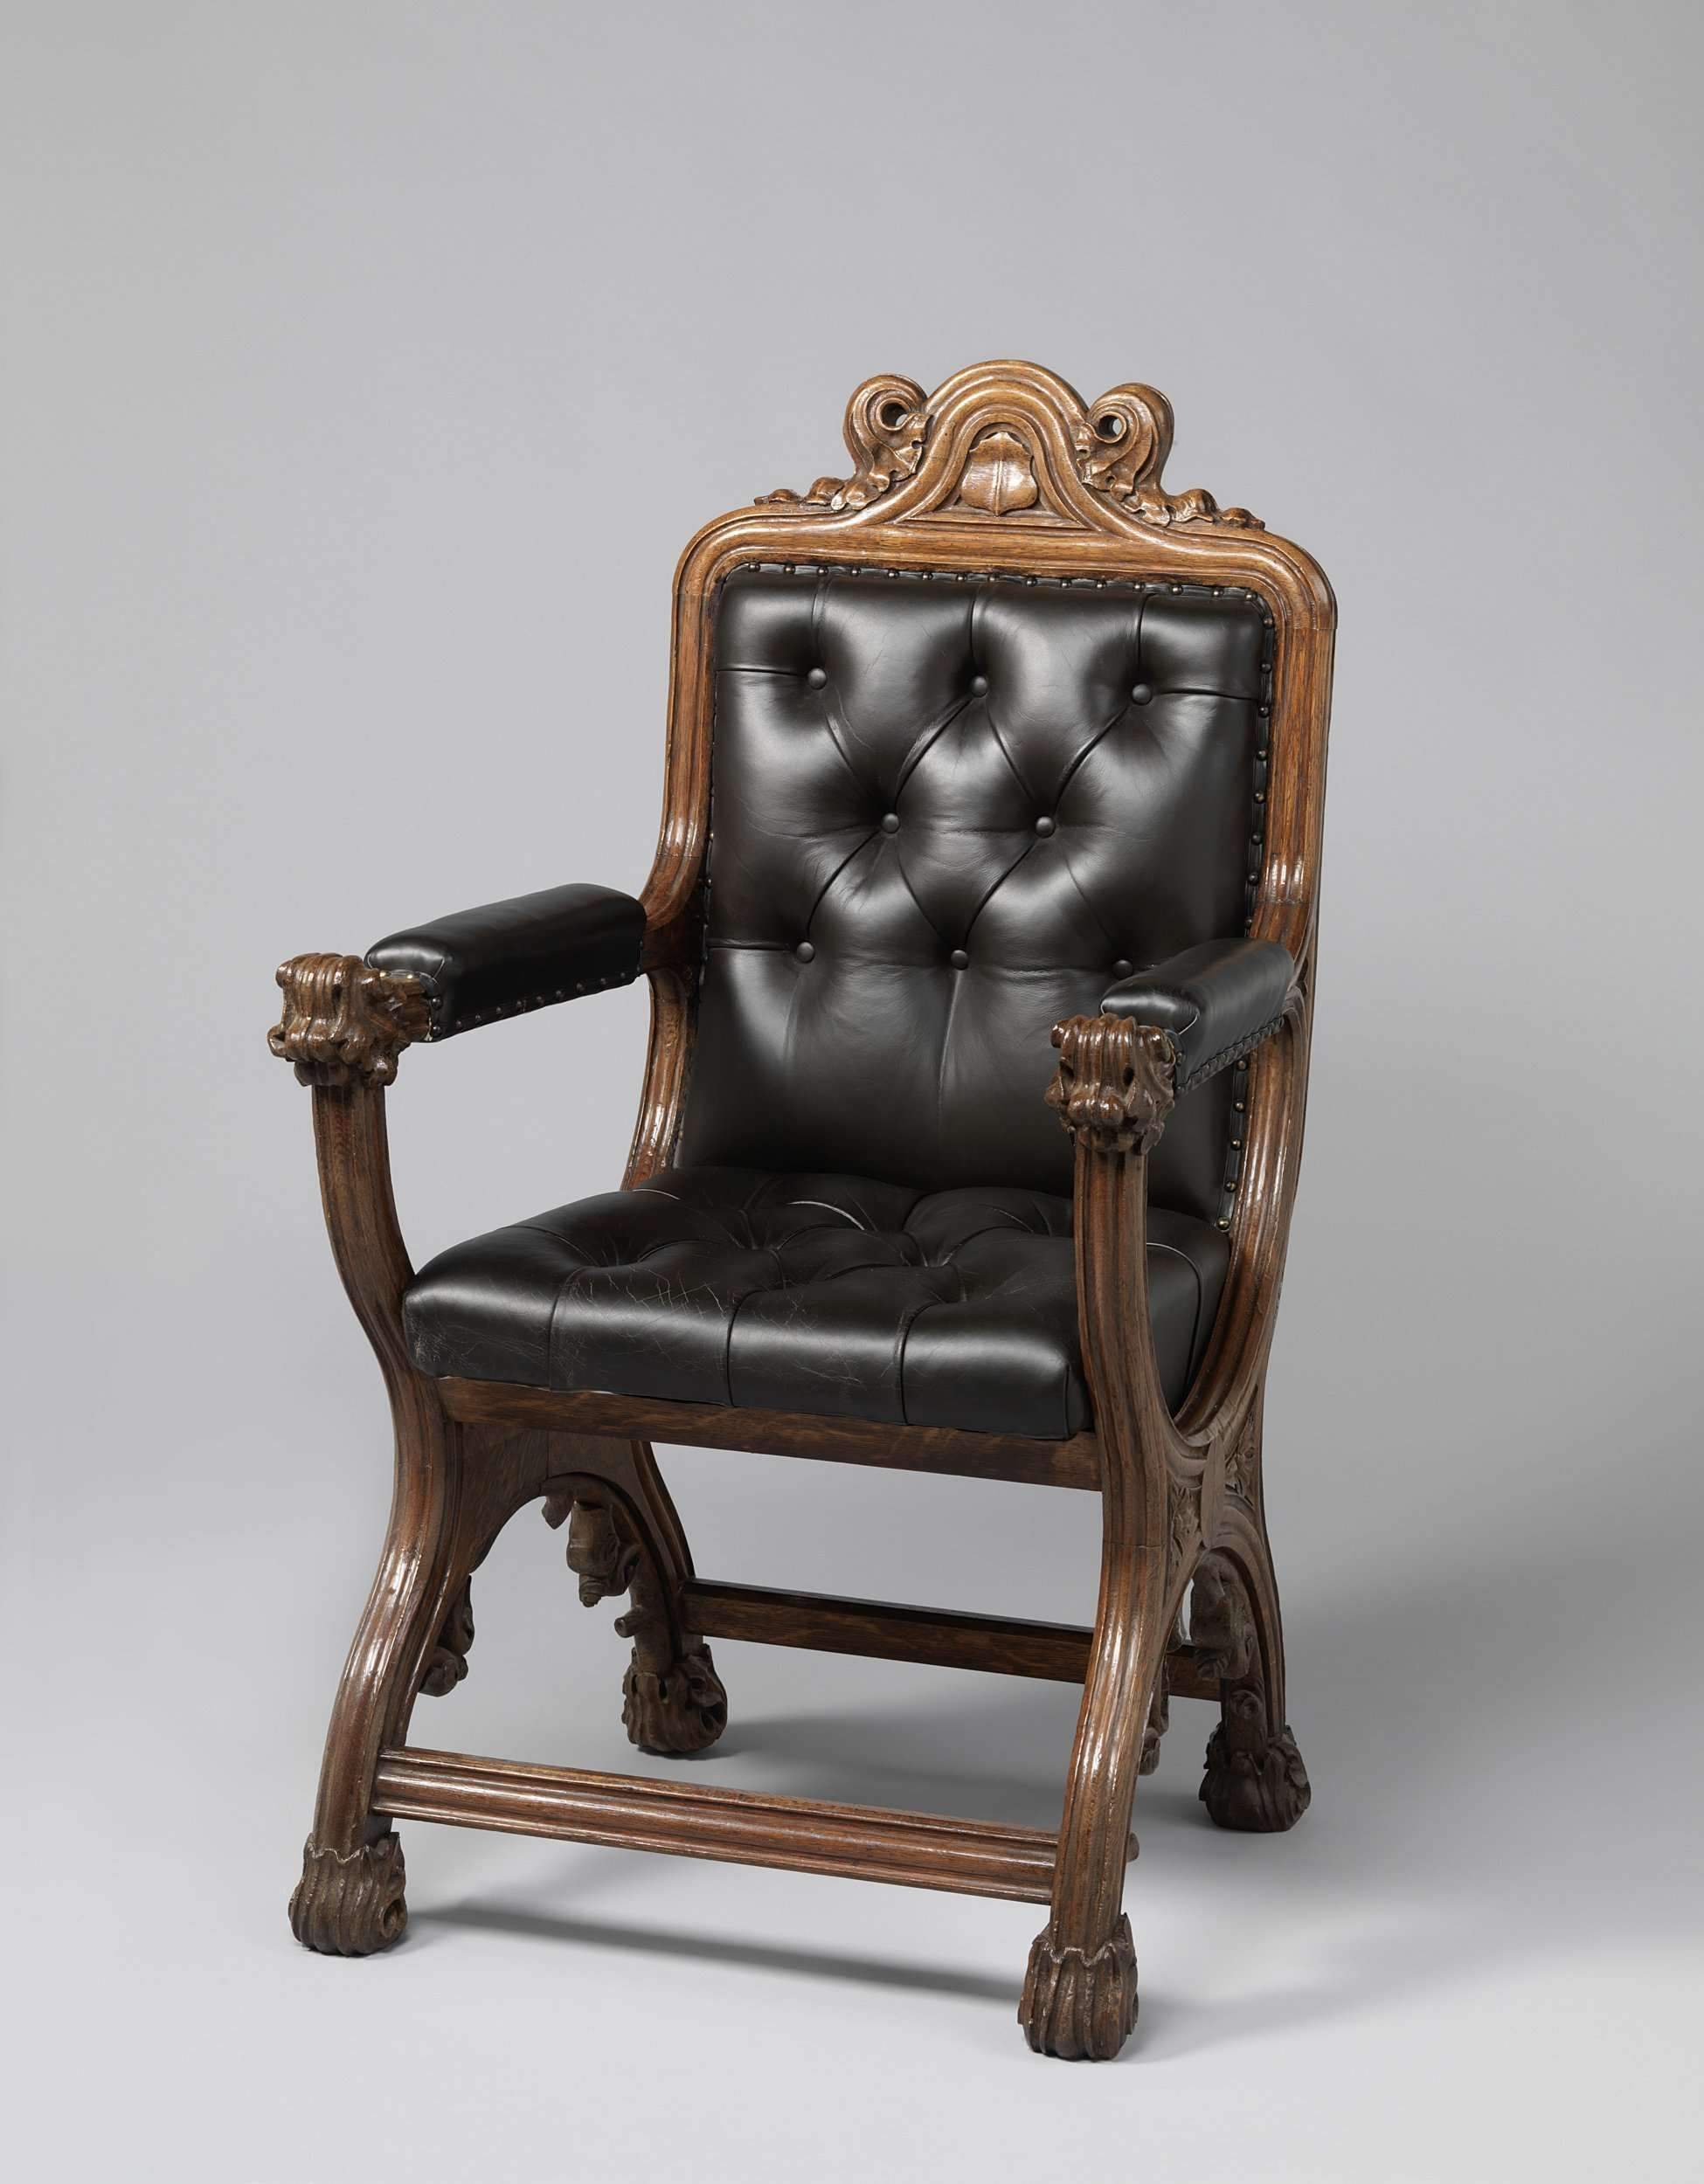 Augustus Pugin Muebles - Armstoel Augustus Welby Northmore Pugin Ca 1840 Original And [mjhdah]http://mowebs.net/wp-content/uploads/2018/01/folding-furniture-awesome-augustus-welby-northmore-pugin-a-pair-of-english-oak-folding-of-folding-furniture.jpg